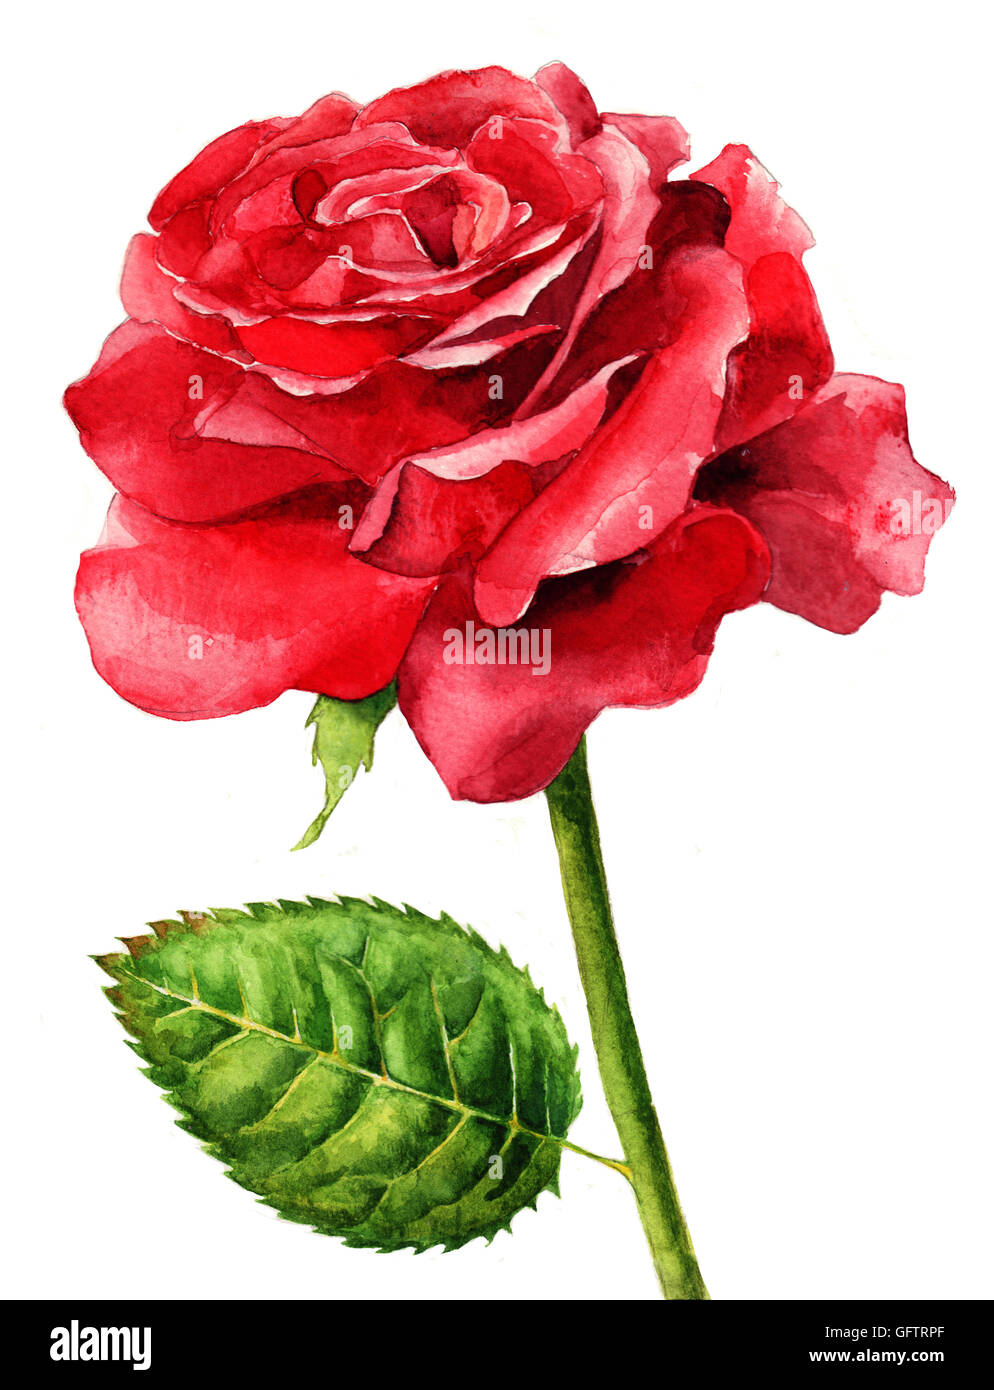 Hand Painted Watercolor Single Red Rose In Full Bloom